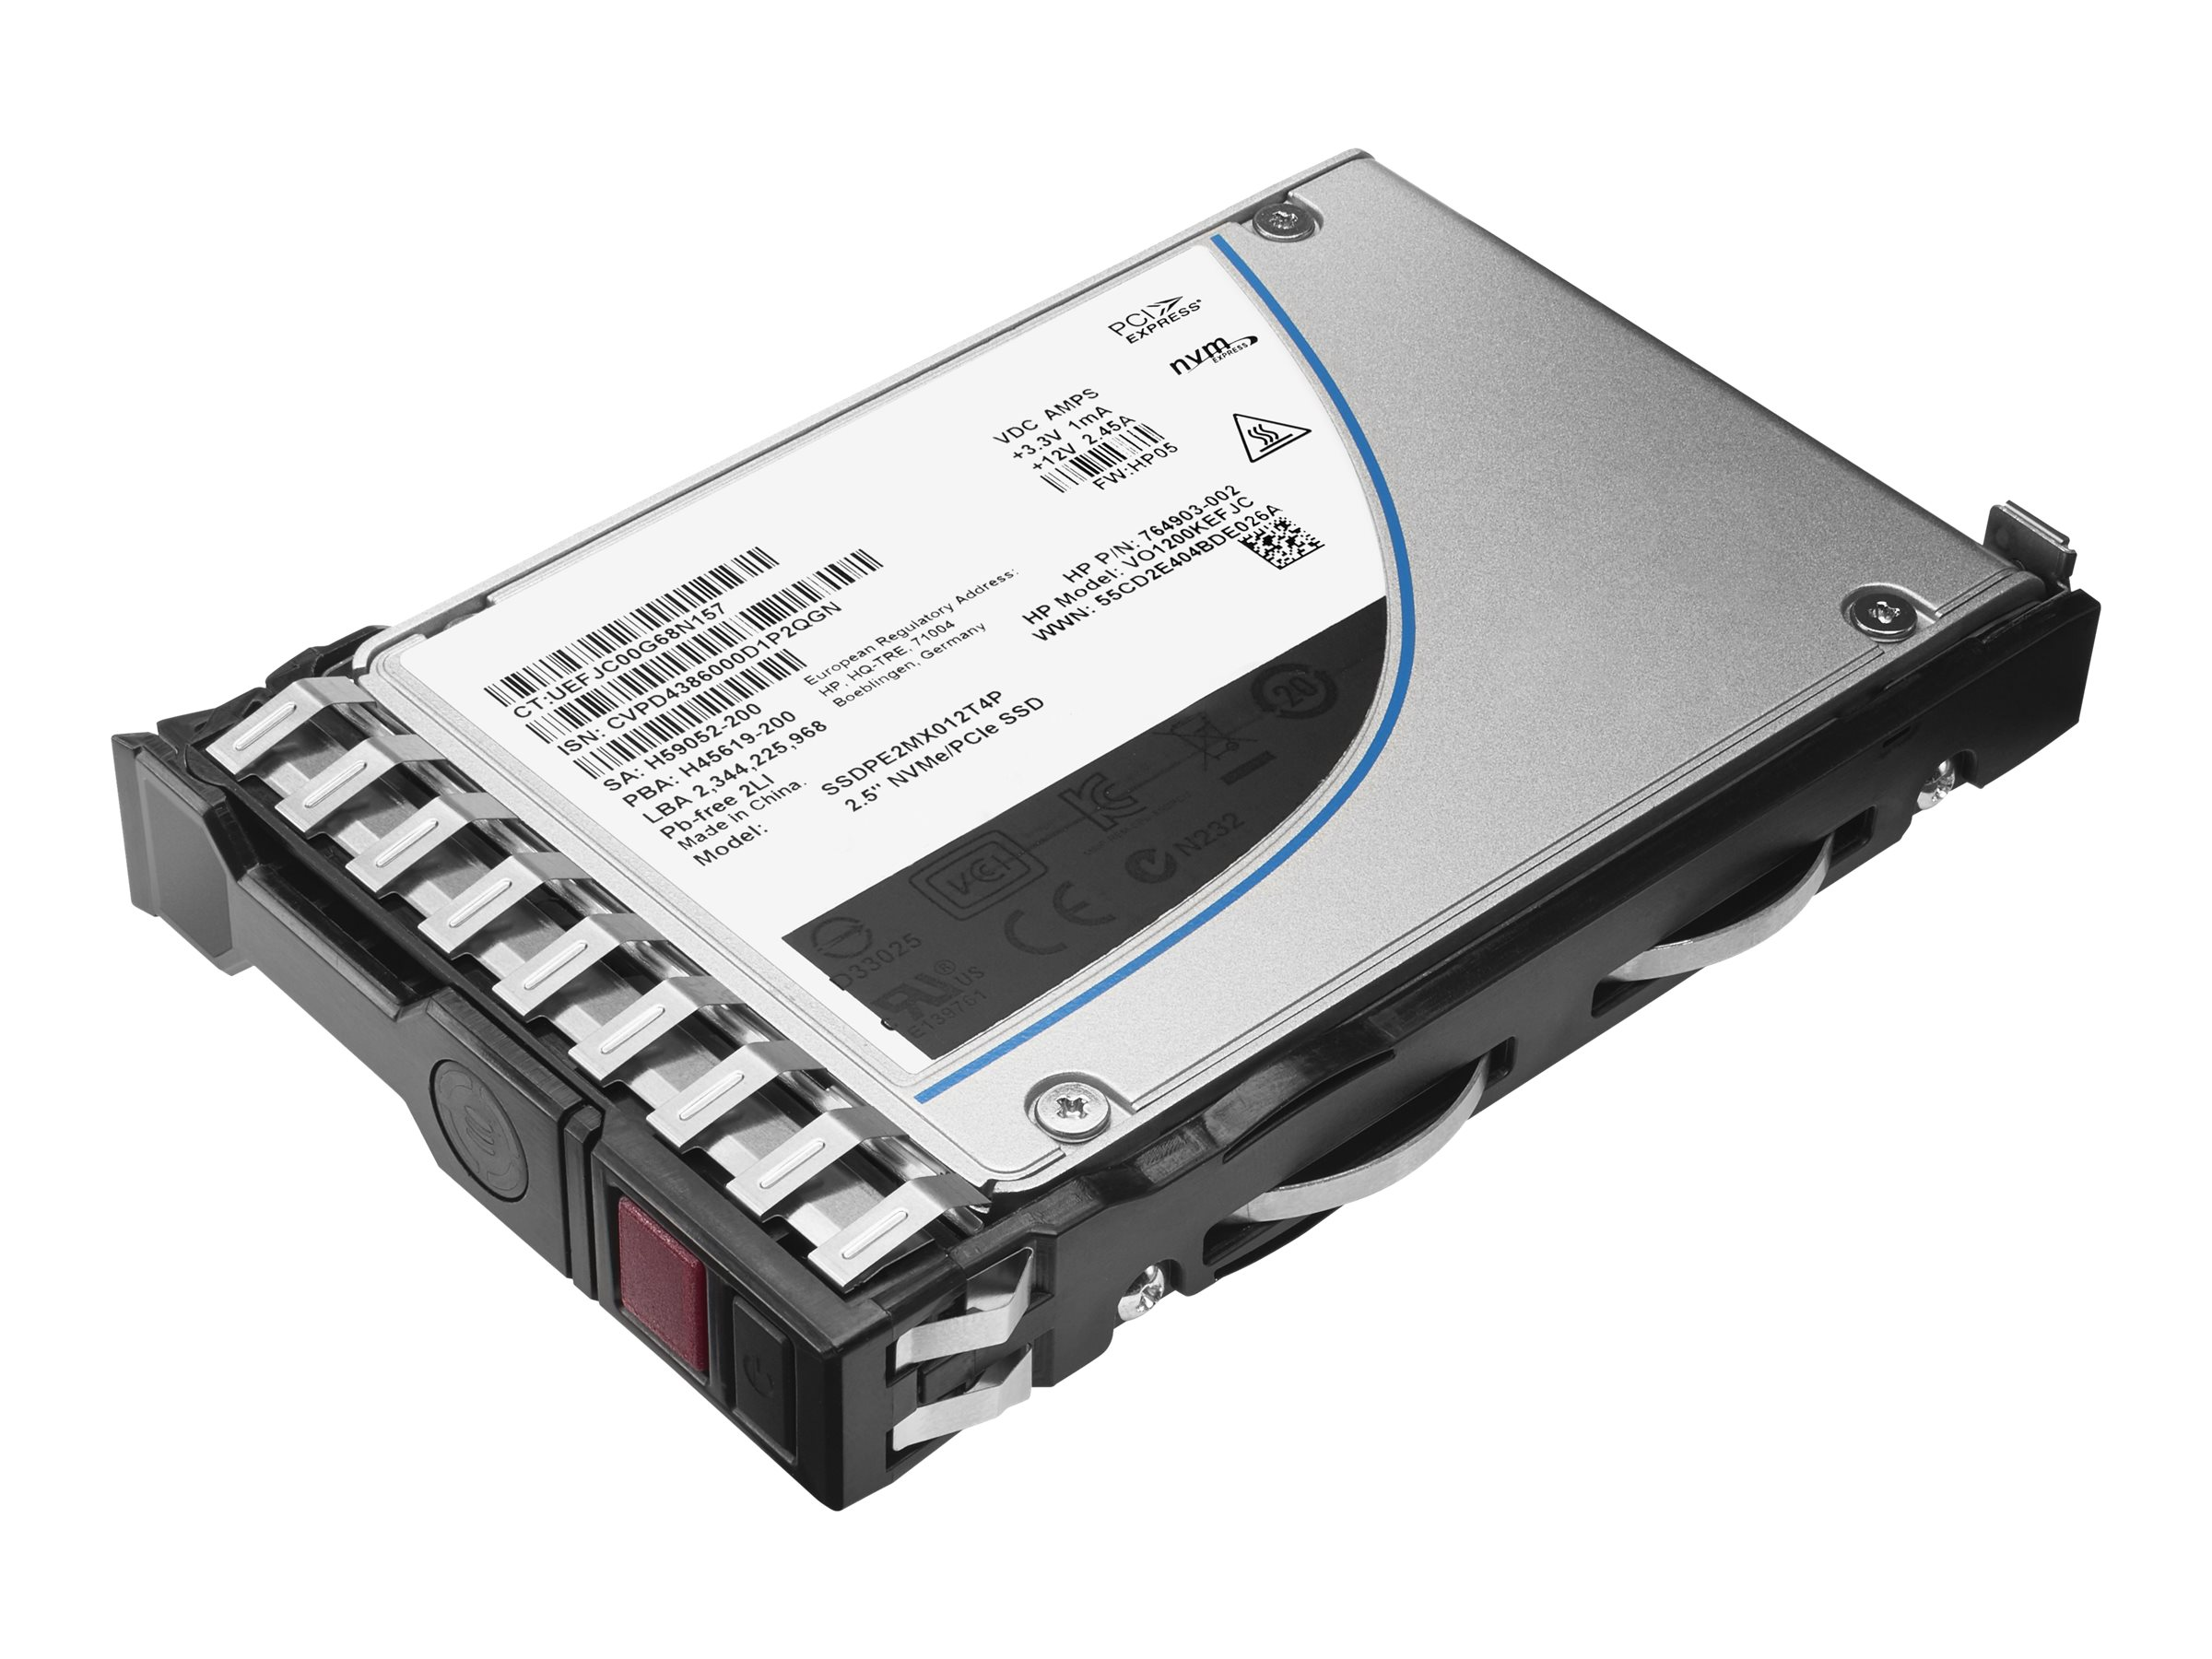 HPE 240GB SATA 6Gb s Read Intensive-3 SFF 2.5 Smart Carrier Solid State Drive